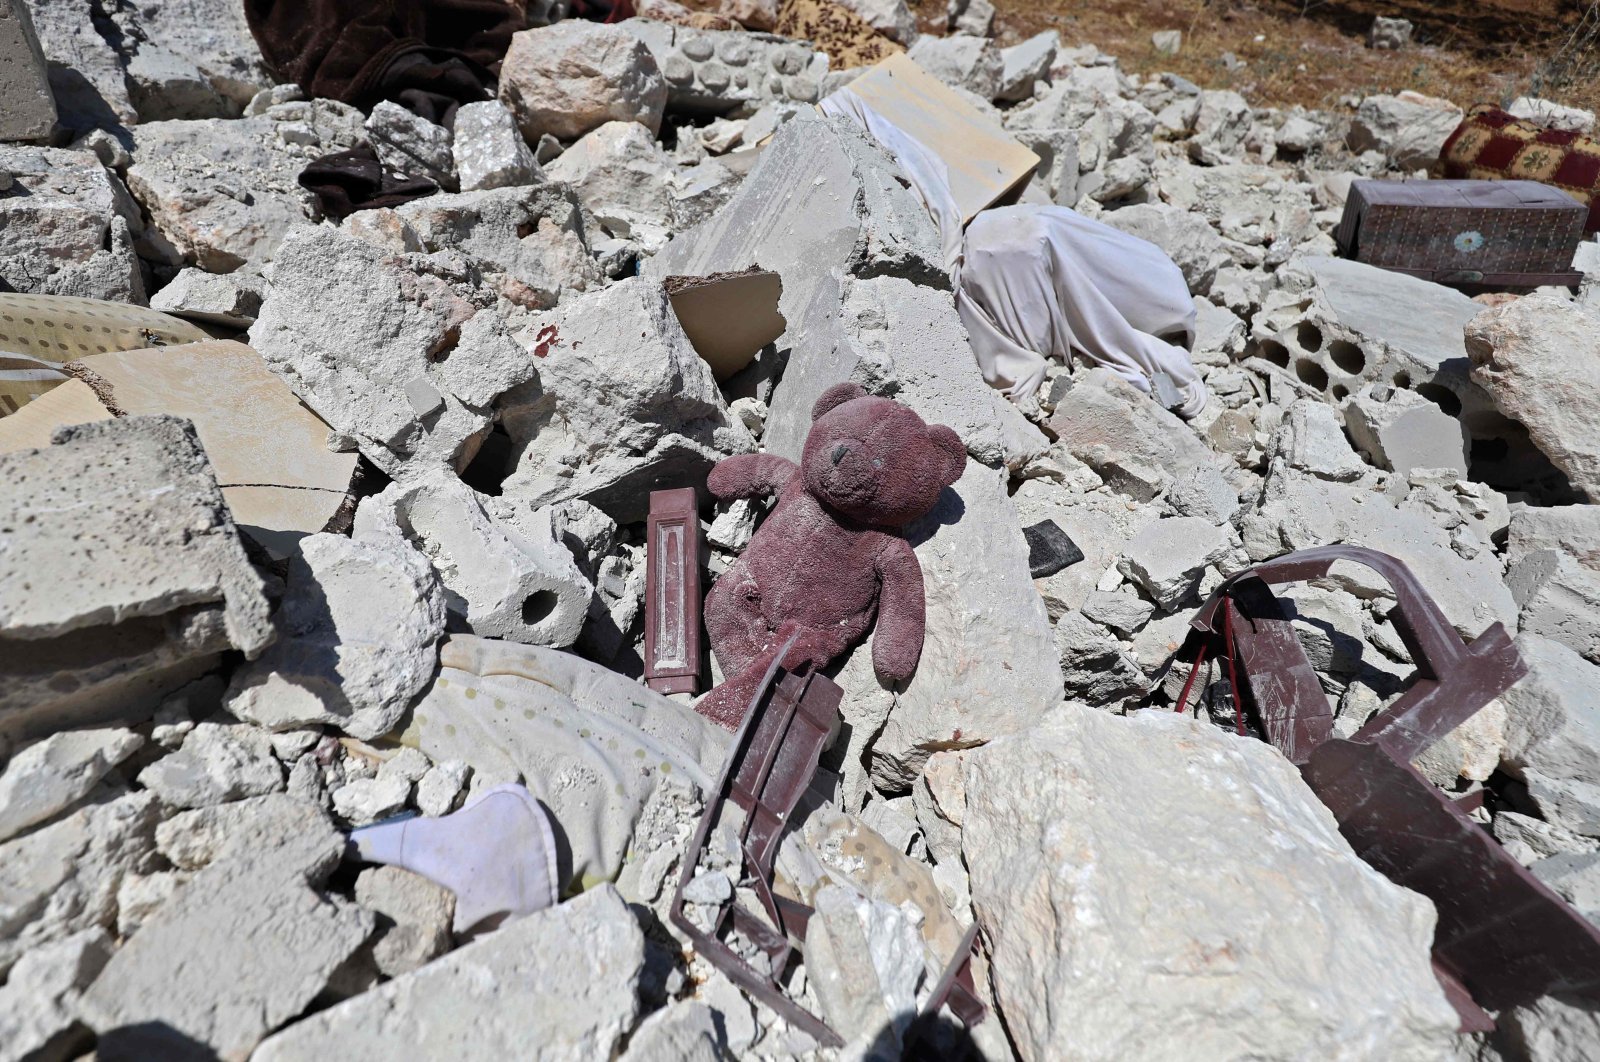 A child's teddy bear is pictured amidst the rubble of a house, following reported shelling by regime forces, in the village of Serja, in the southern part of Syria's Idlib province, on July 17, 2021. (Photo by Abdulaziz KETAZ / AFP)